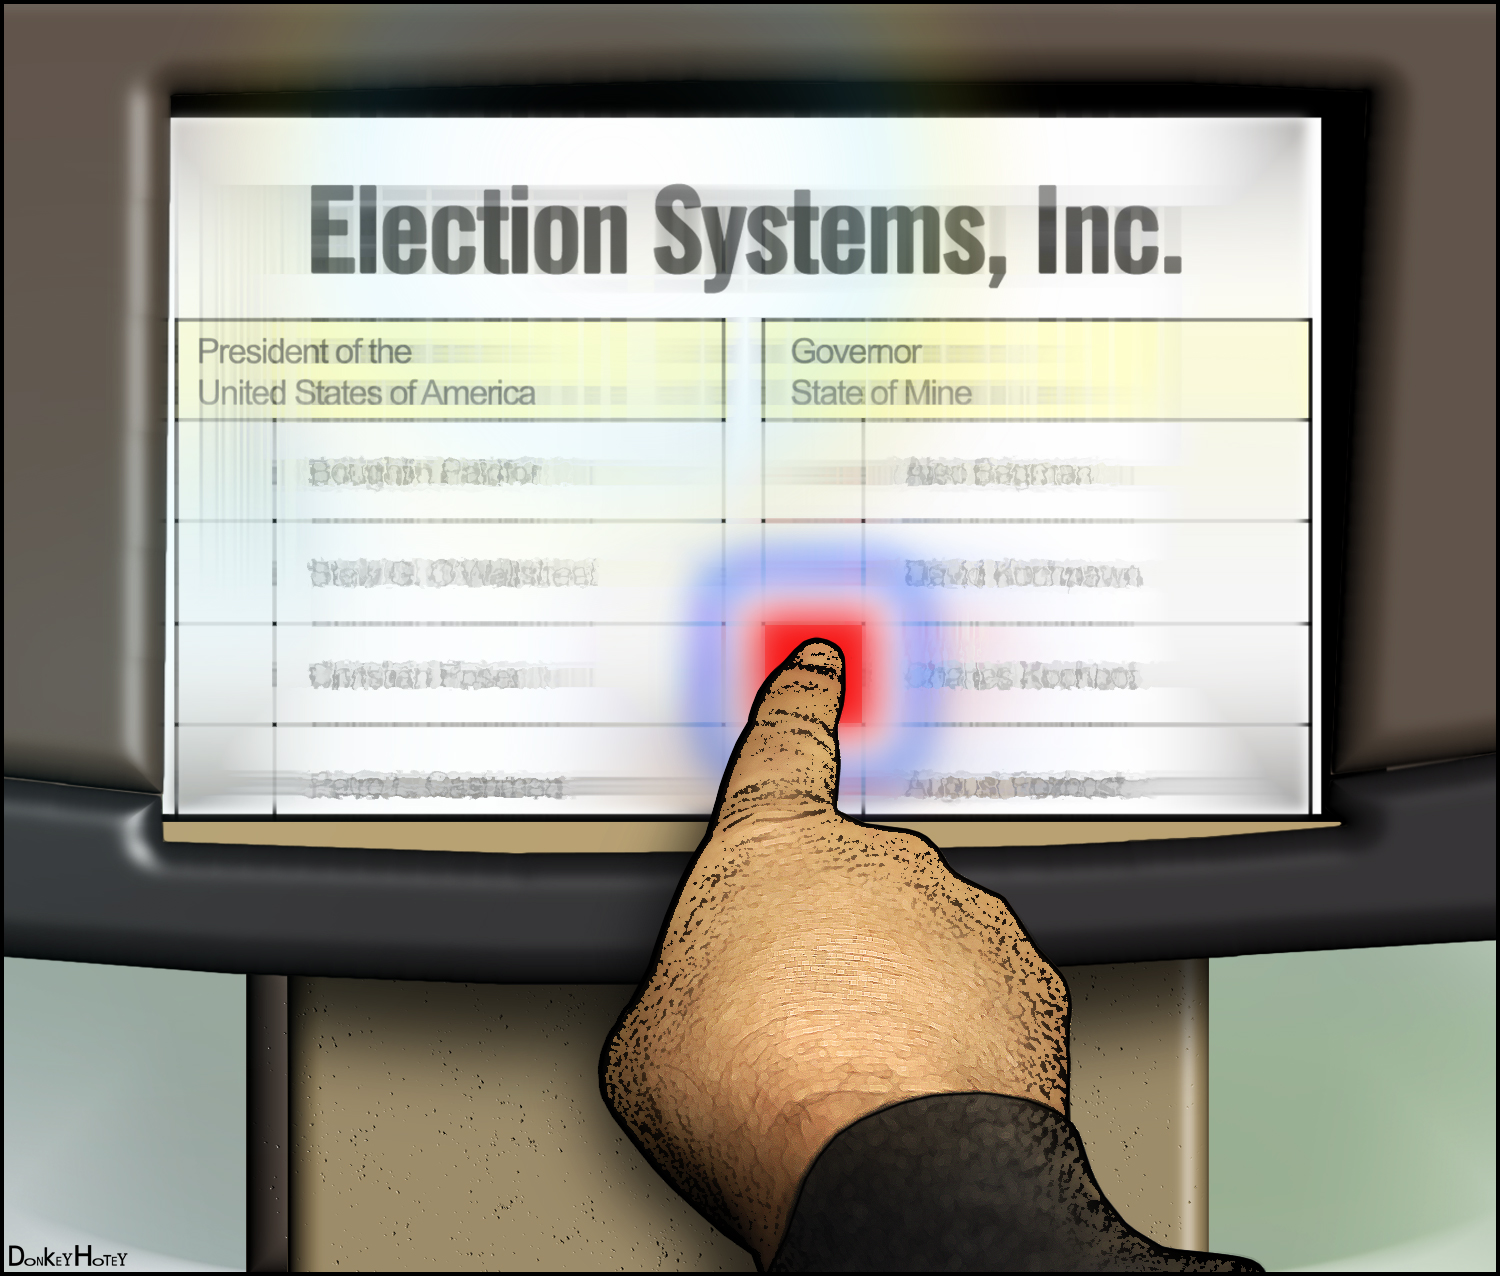 voting system for upcoming election should be improved Complete election process v voting system from the state's perspective it is important that the complete election process be secure, reliable, accurate, user friendly and accessible.